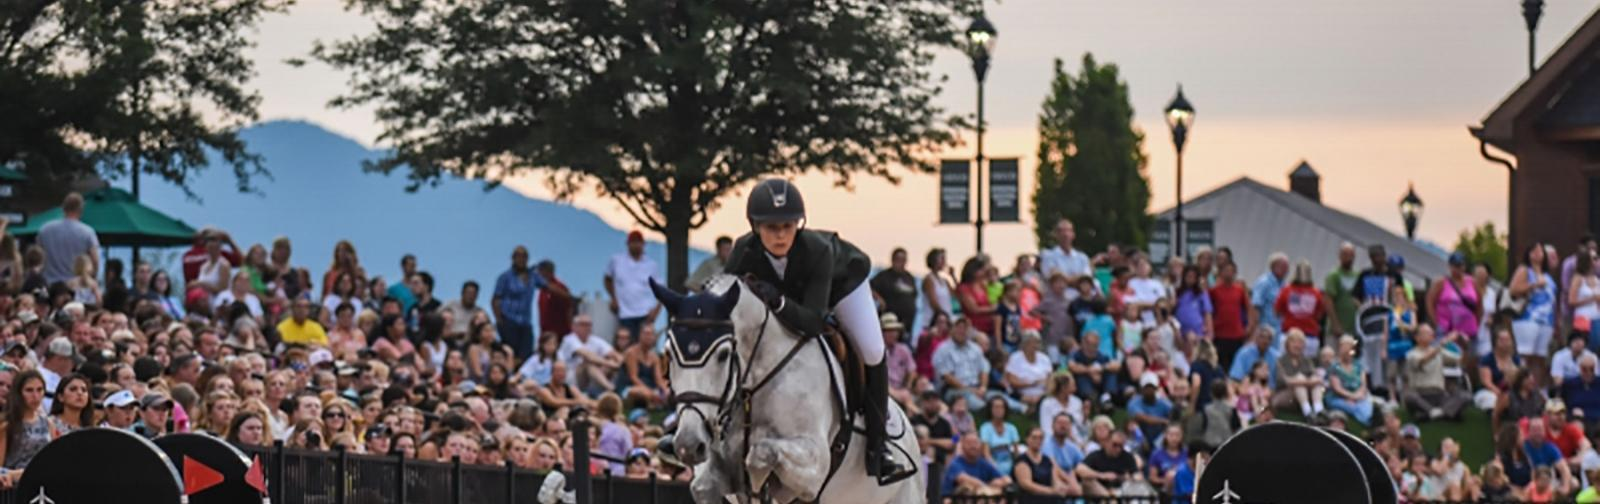 2018 FEI World Equestrian Games near Asheville, North Carolina